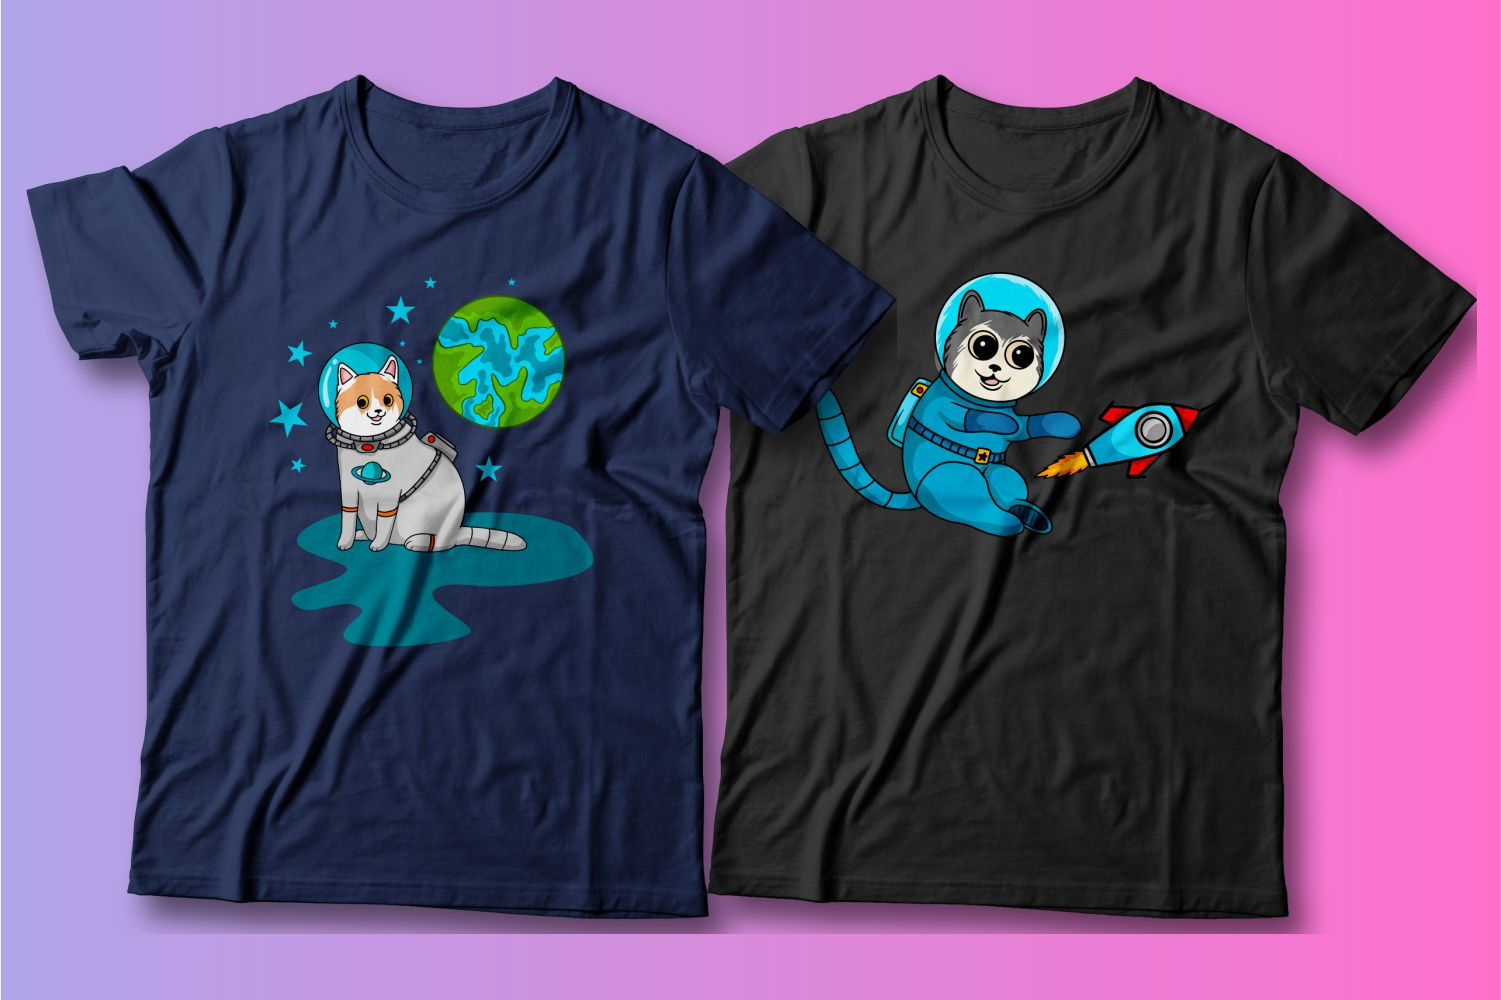 For these kittens, rockets and cosmonaut costumes are just entertainment.